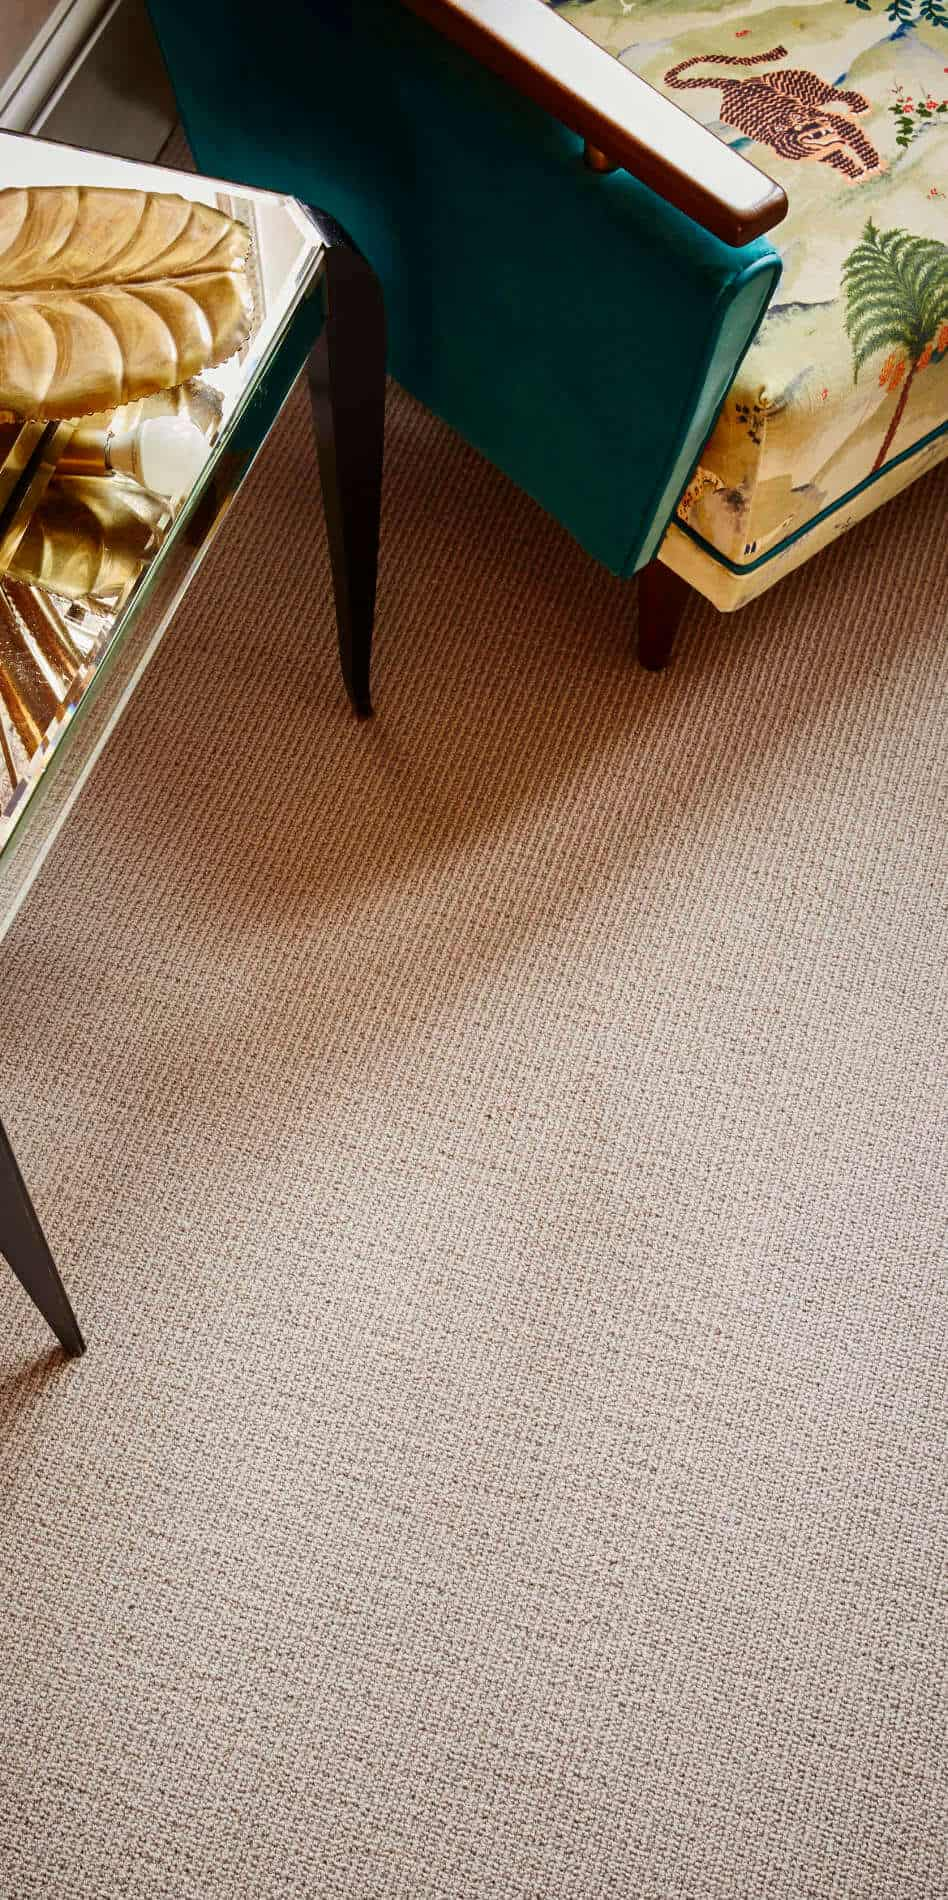 bedroom carpet